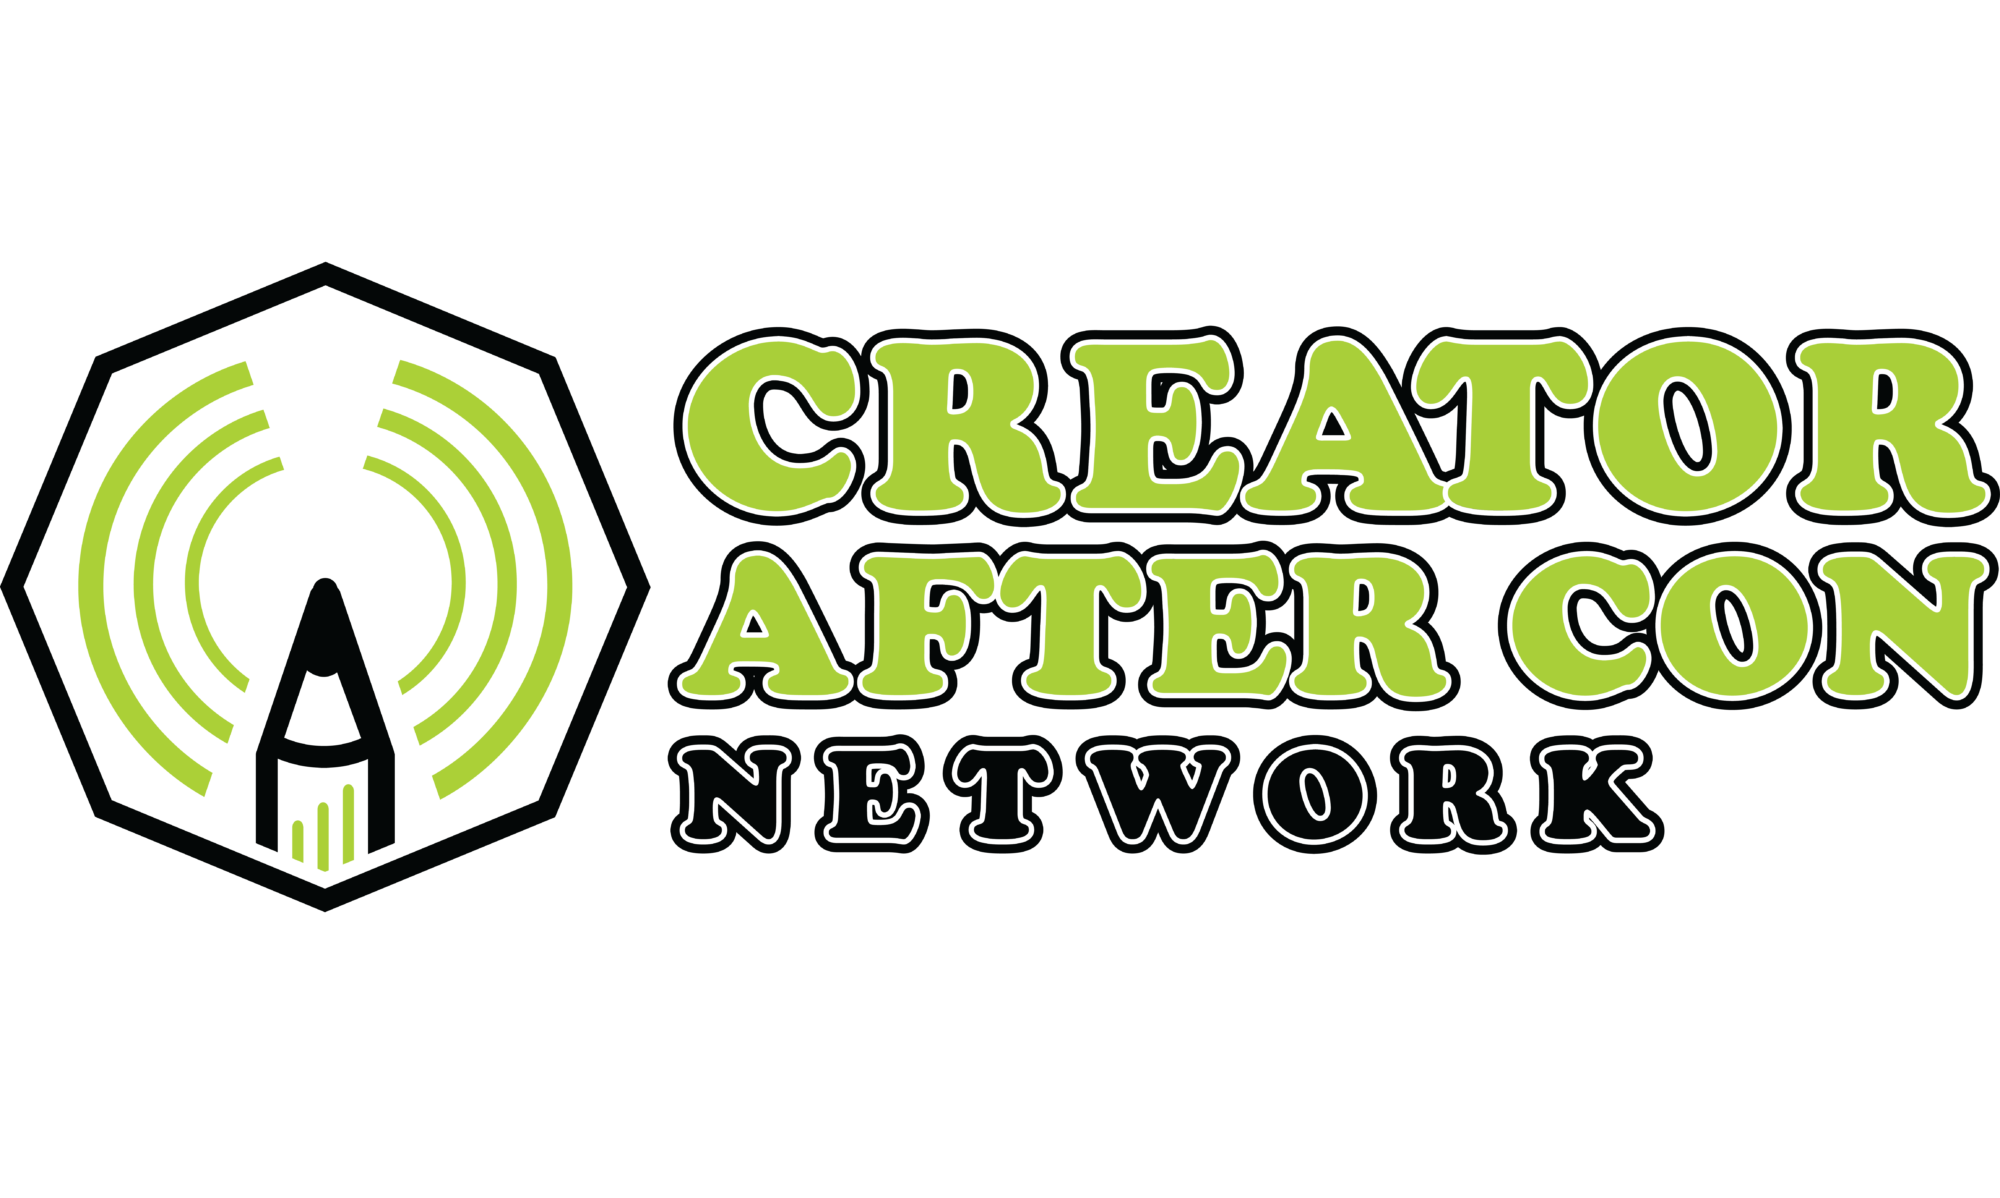 Creator After Con Network